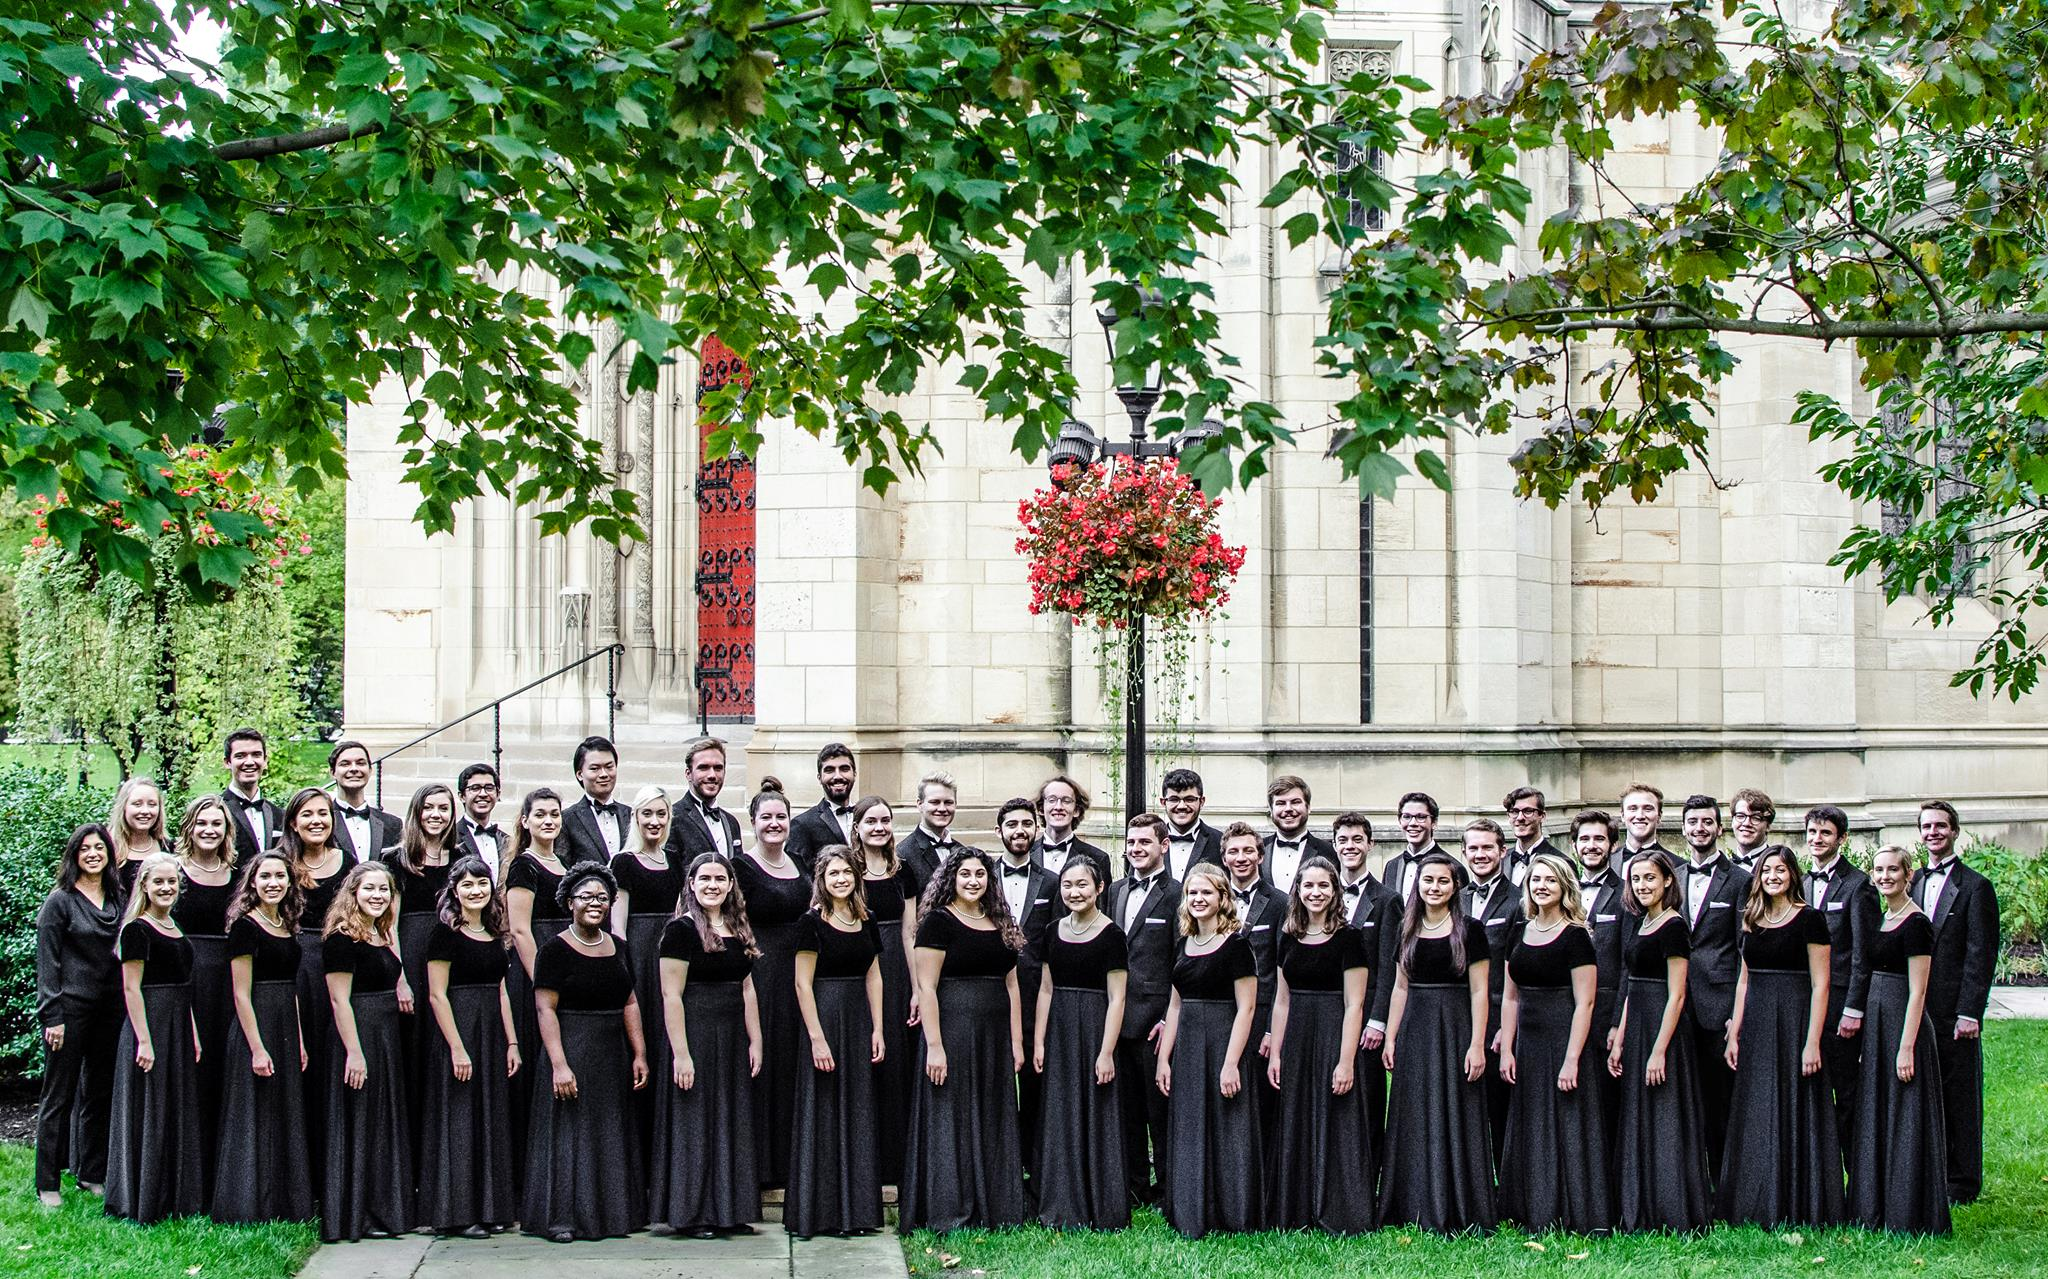 Heinz Chapel Choir 80th Anniversary Concert